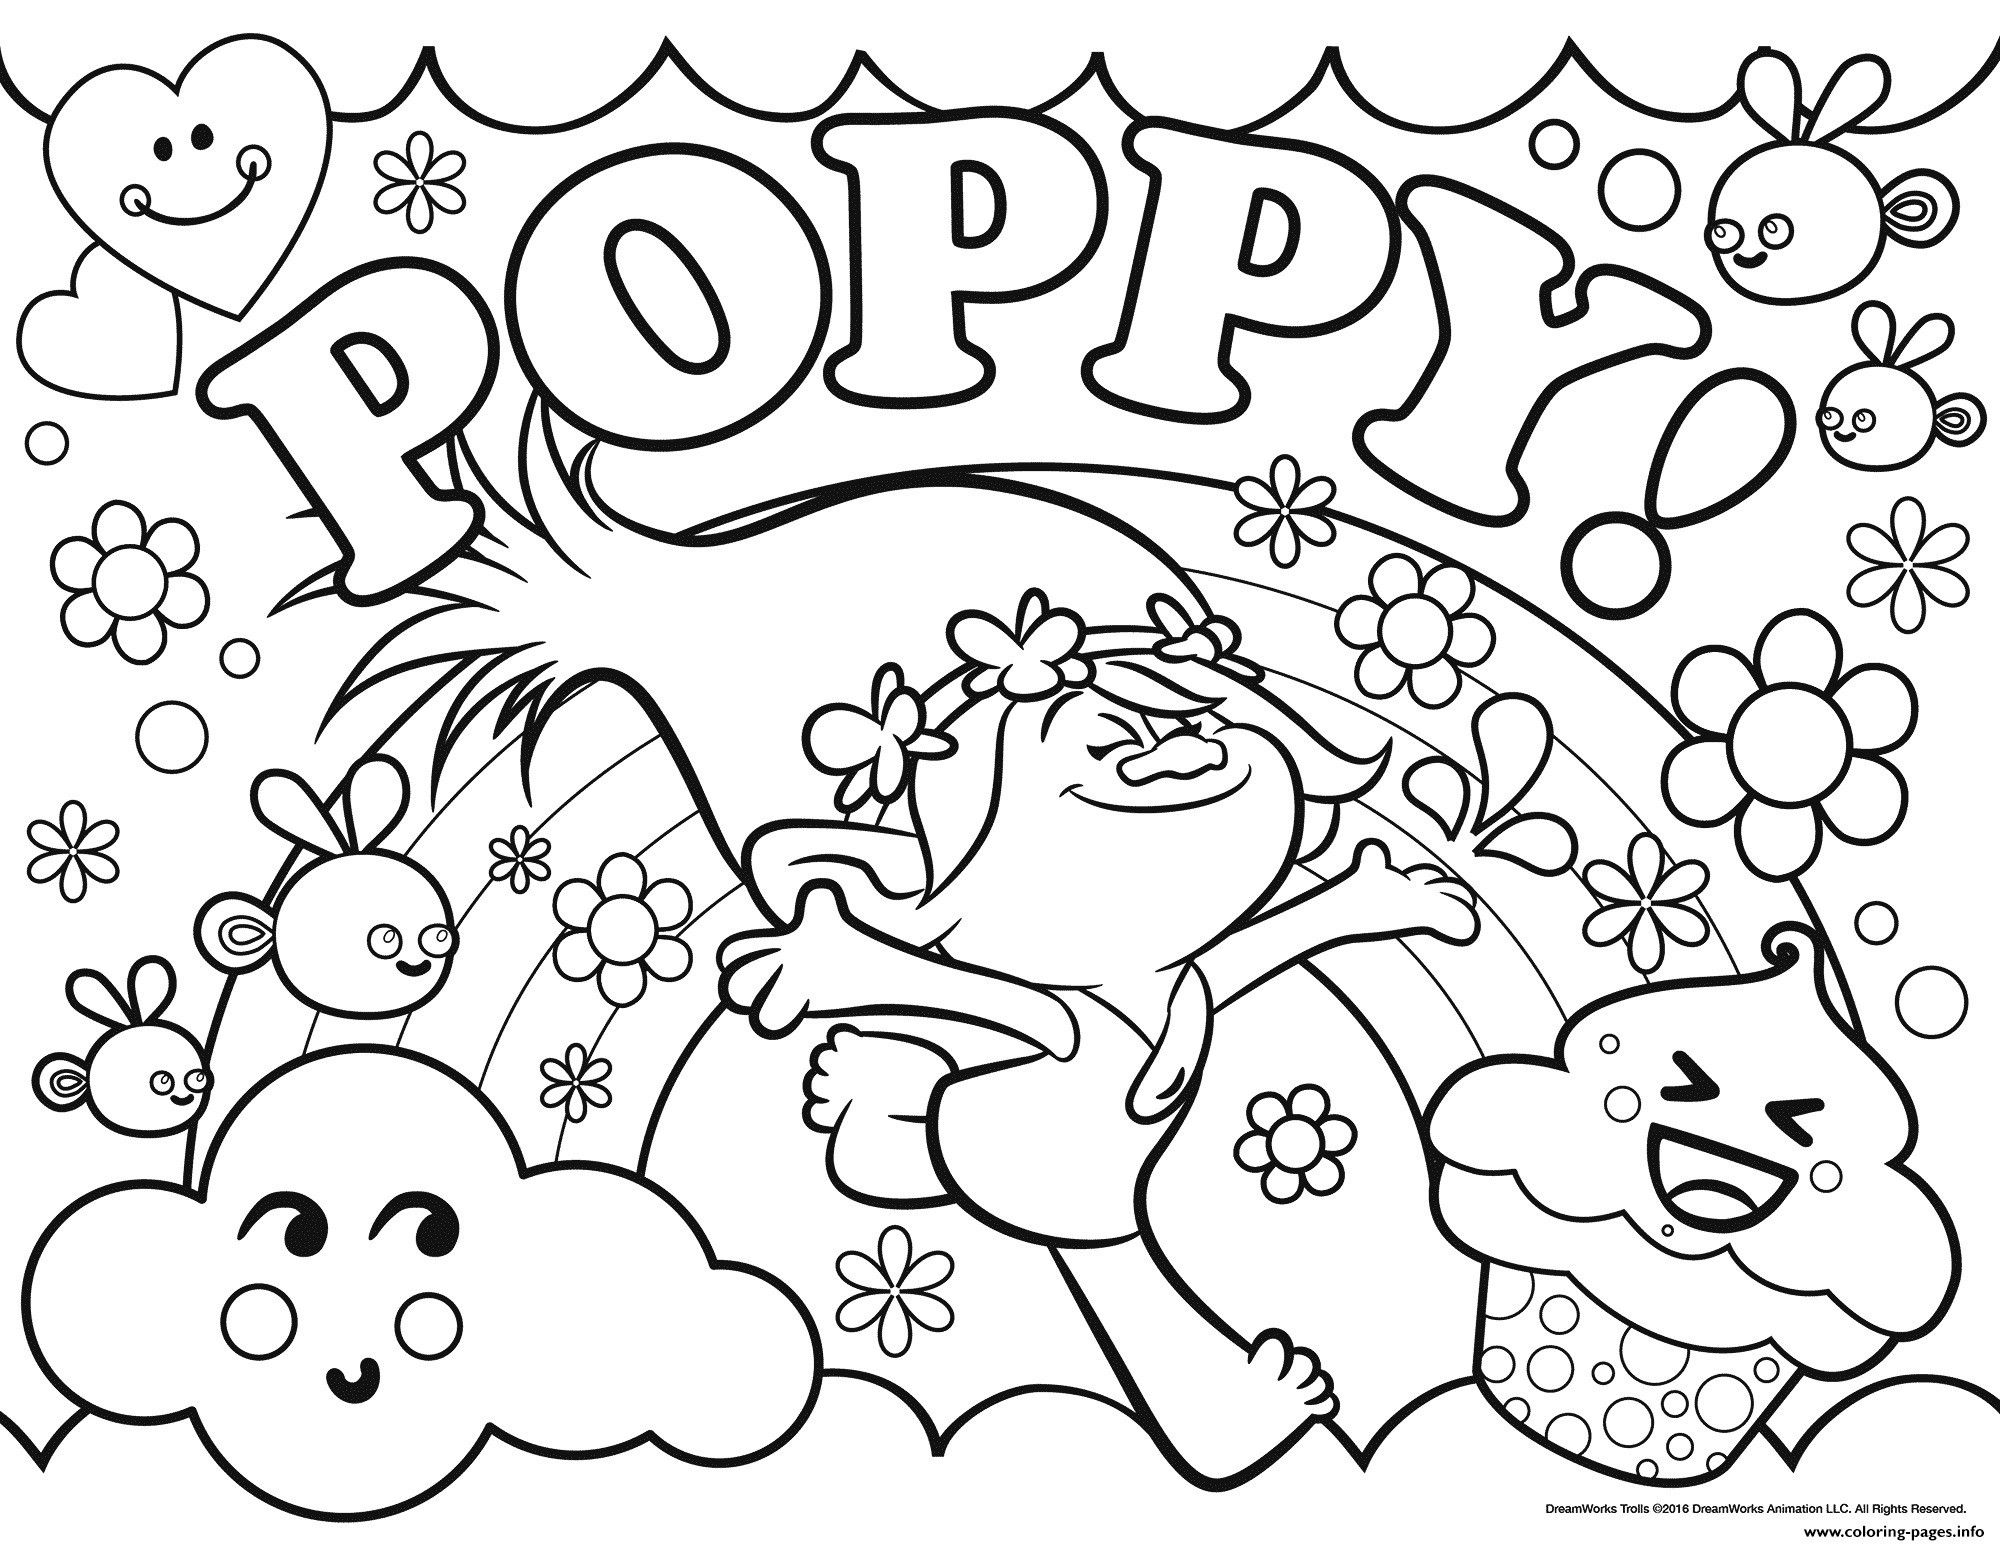 Trolls Colouring Pages Printable From The Thousands Of Pictures On Line Concerning Trolls Co Poppy Coloring Page Cartoon Coloring Pages Disney Coloring Pages